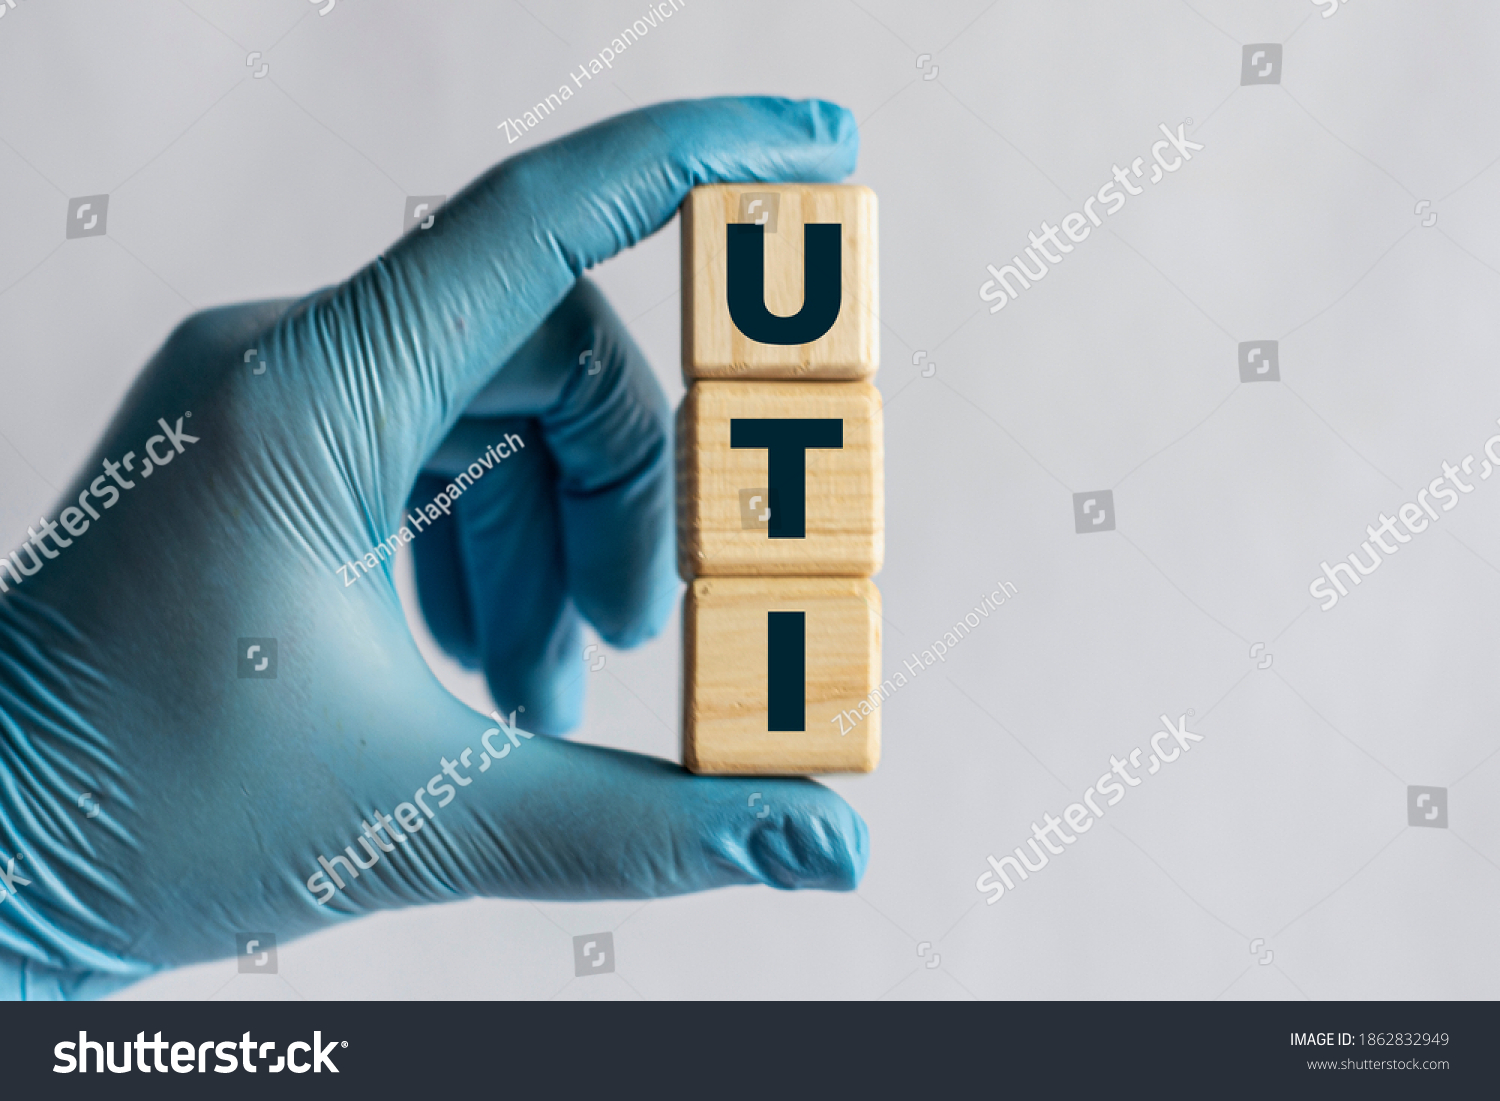 UTI (Urinary Tract Infection) - is an acronym on cubes held by a hand in a blue glove. Medical concept. #1862832949